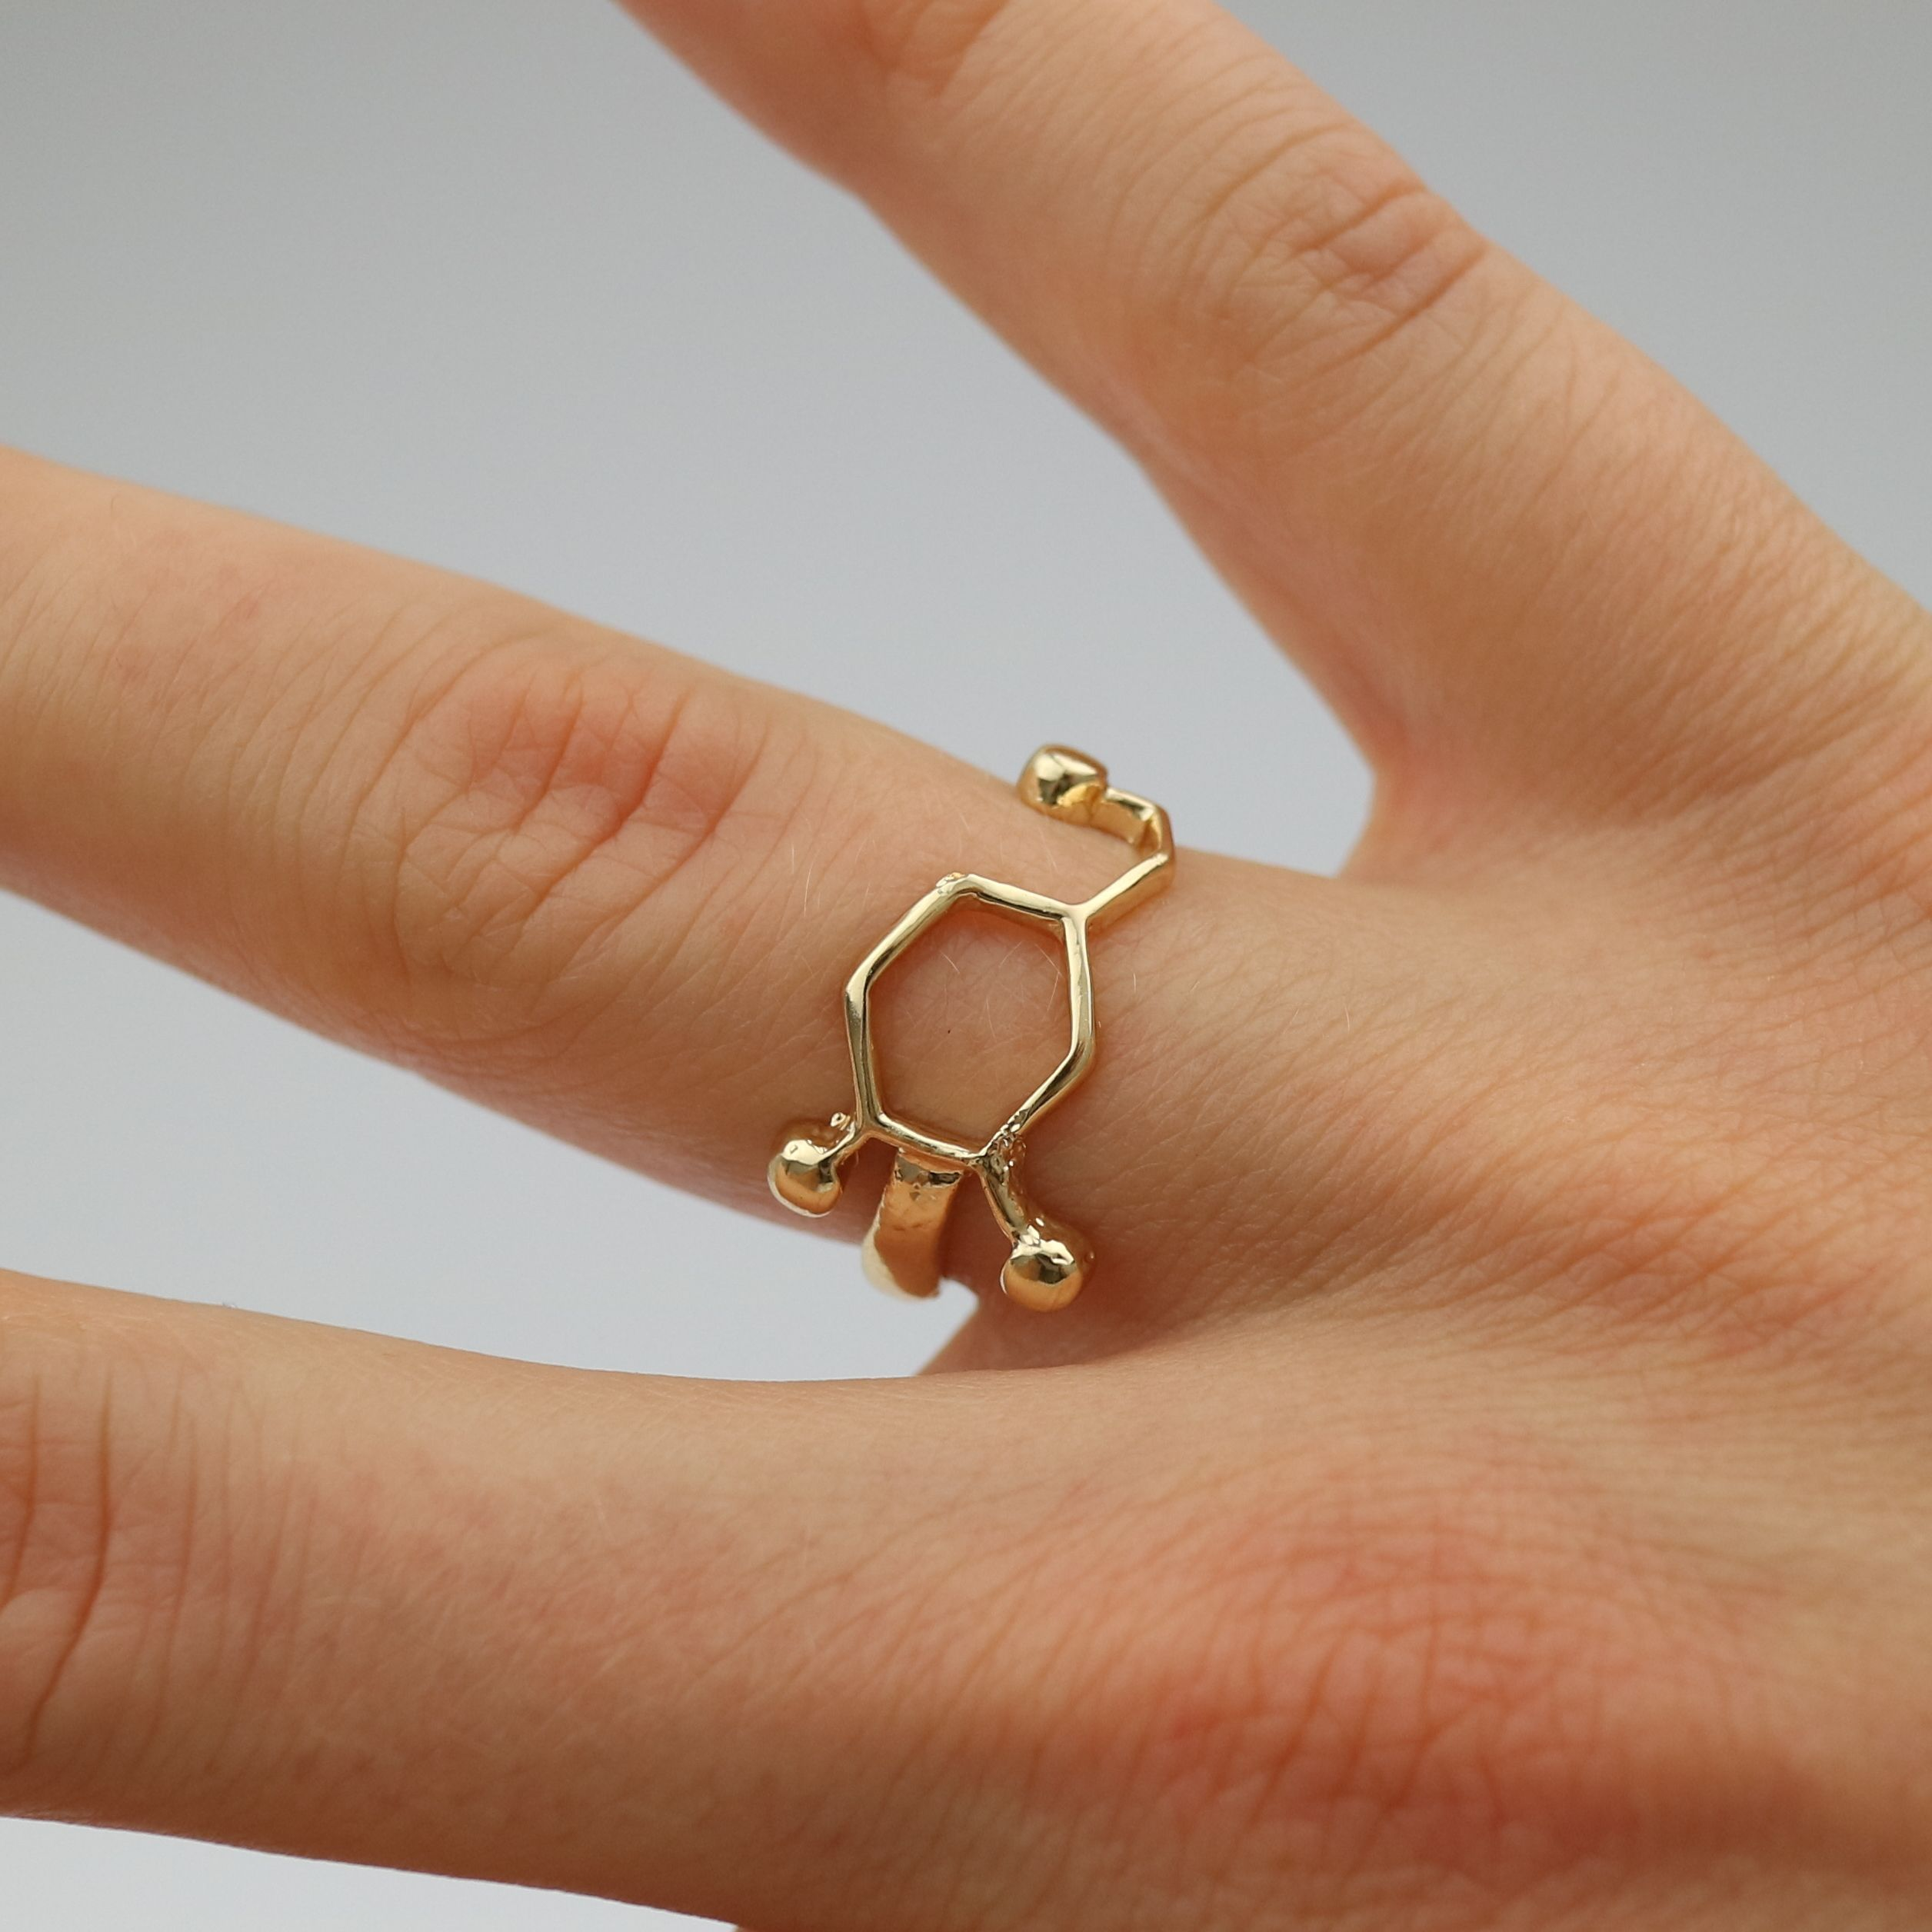 Dopamine Molecule Ring Model Gold